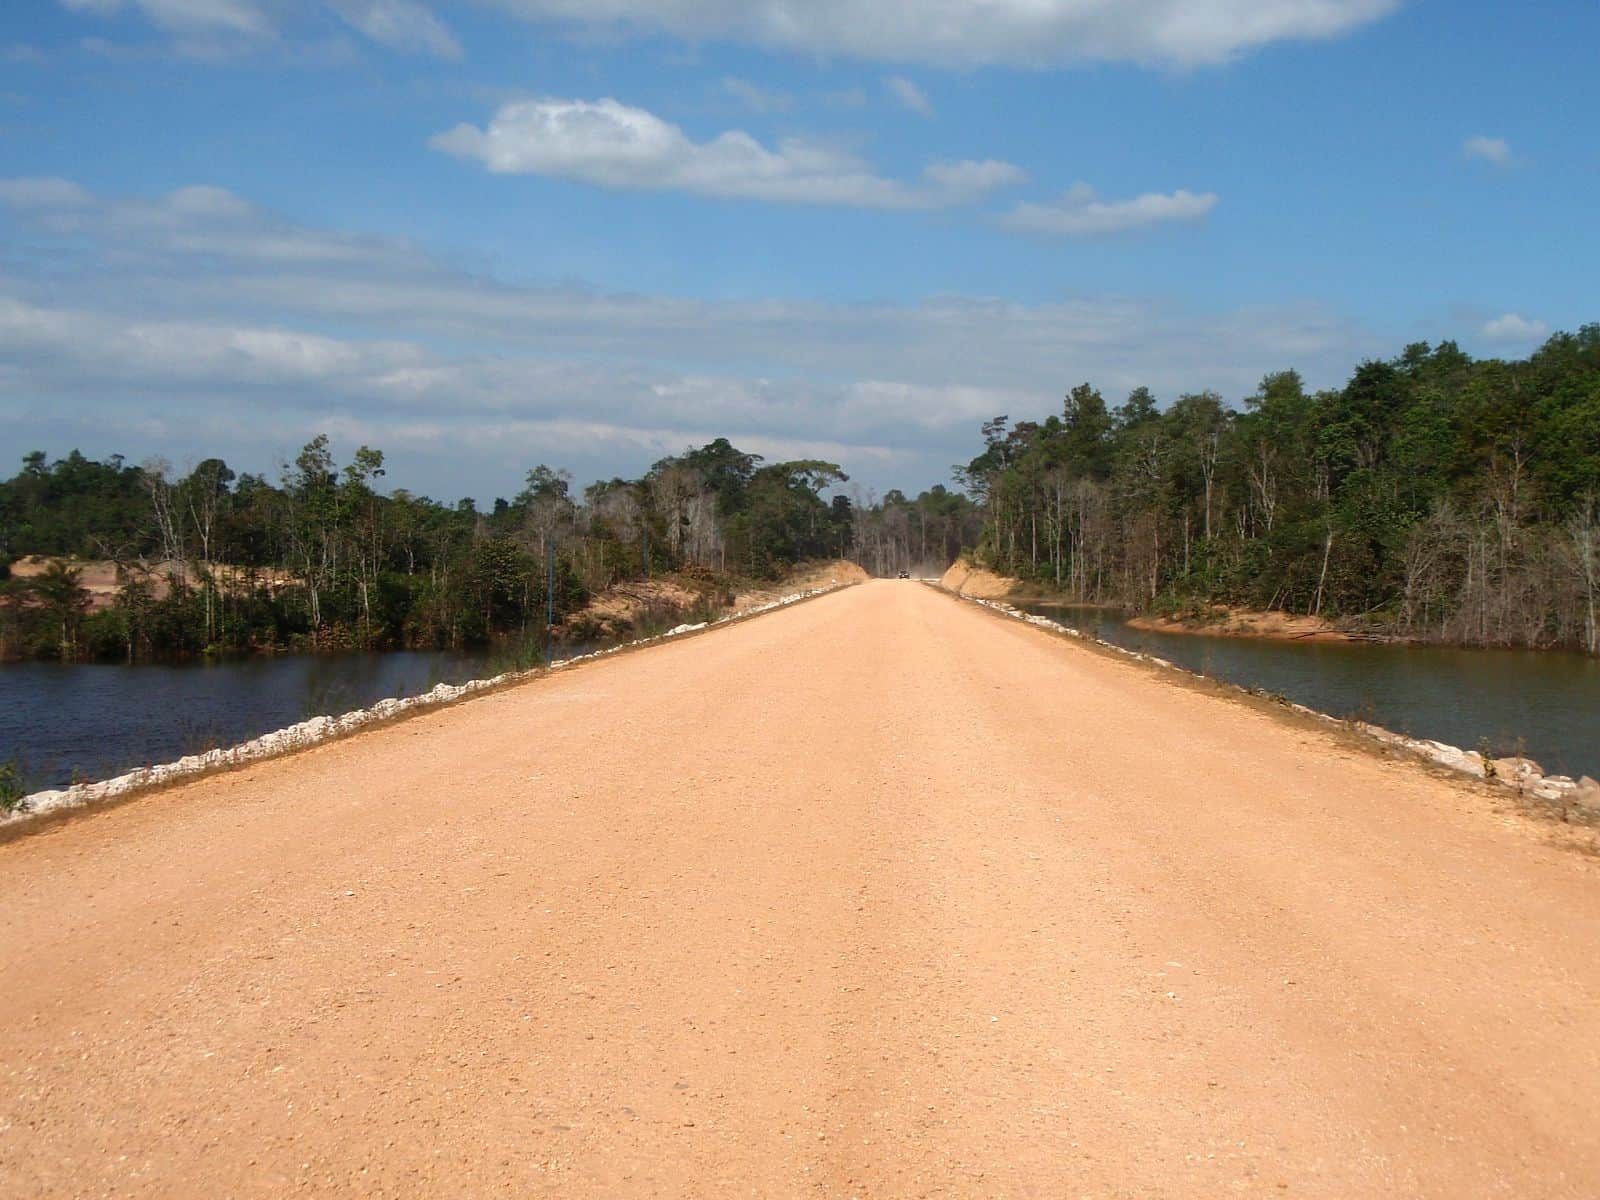 The roads around Thakhek, Laos.